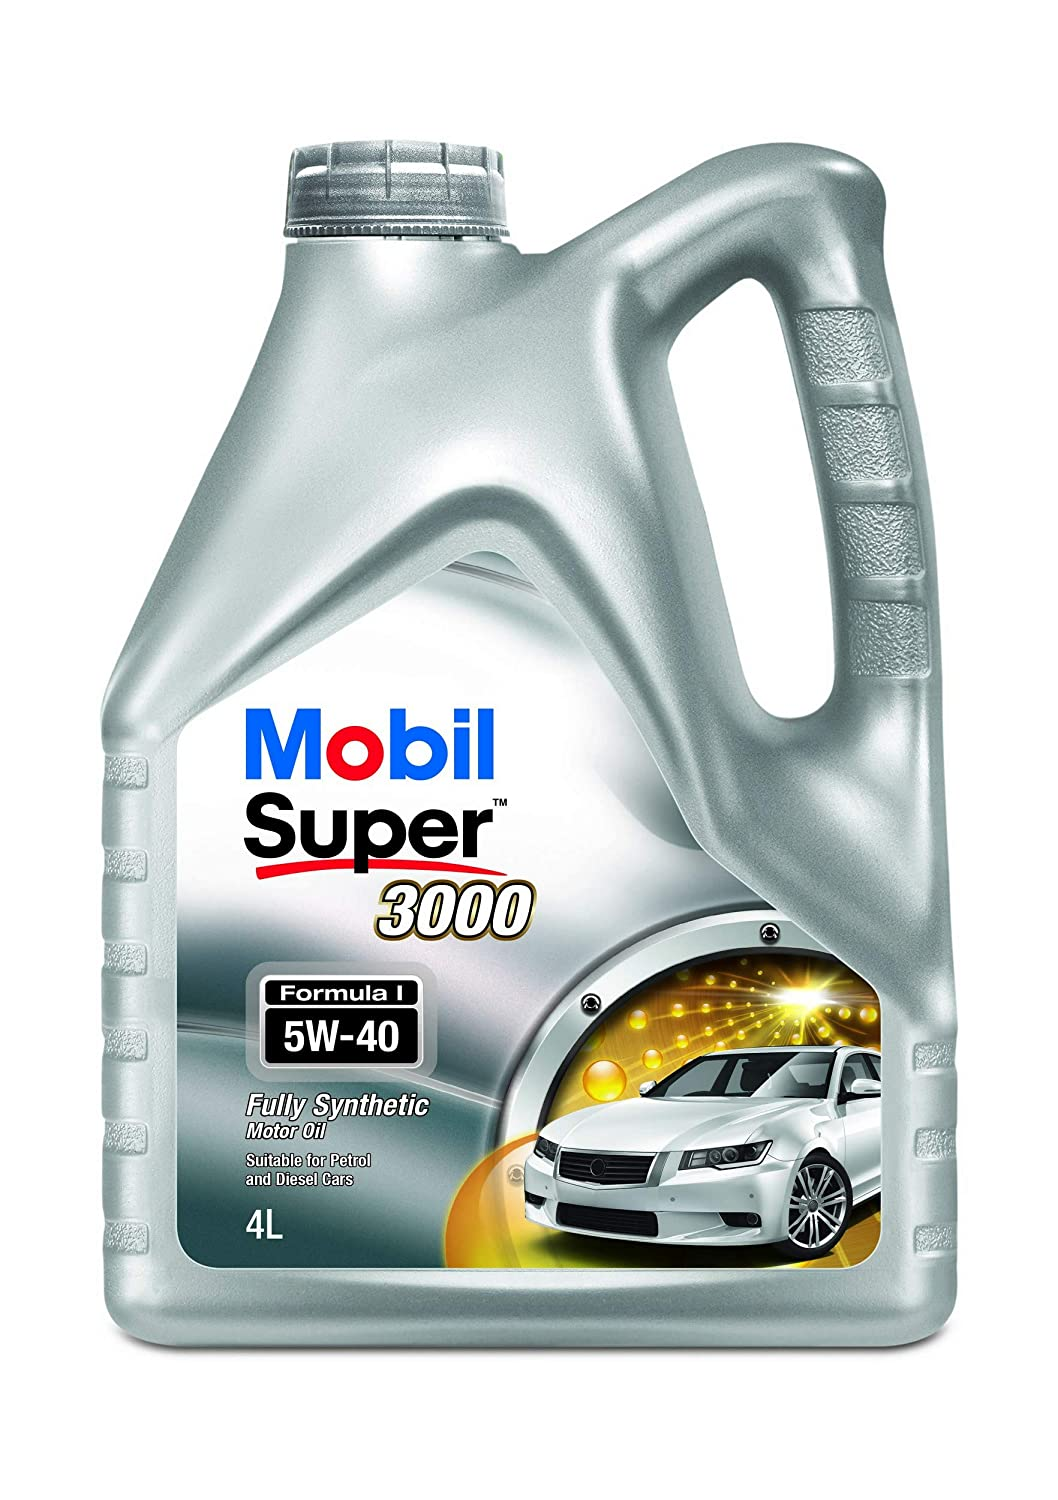 Mobil Super 3000 Formula 1 5w 40 Api Cf Fully Synthetic Engine Oil